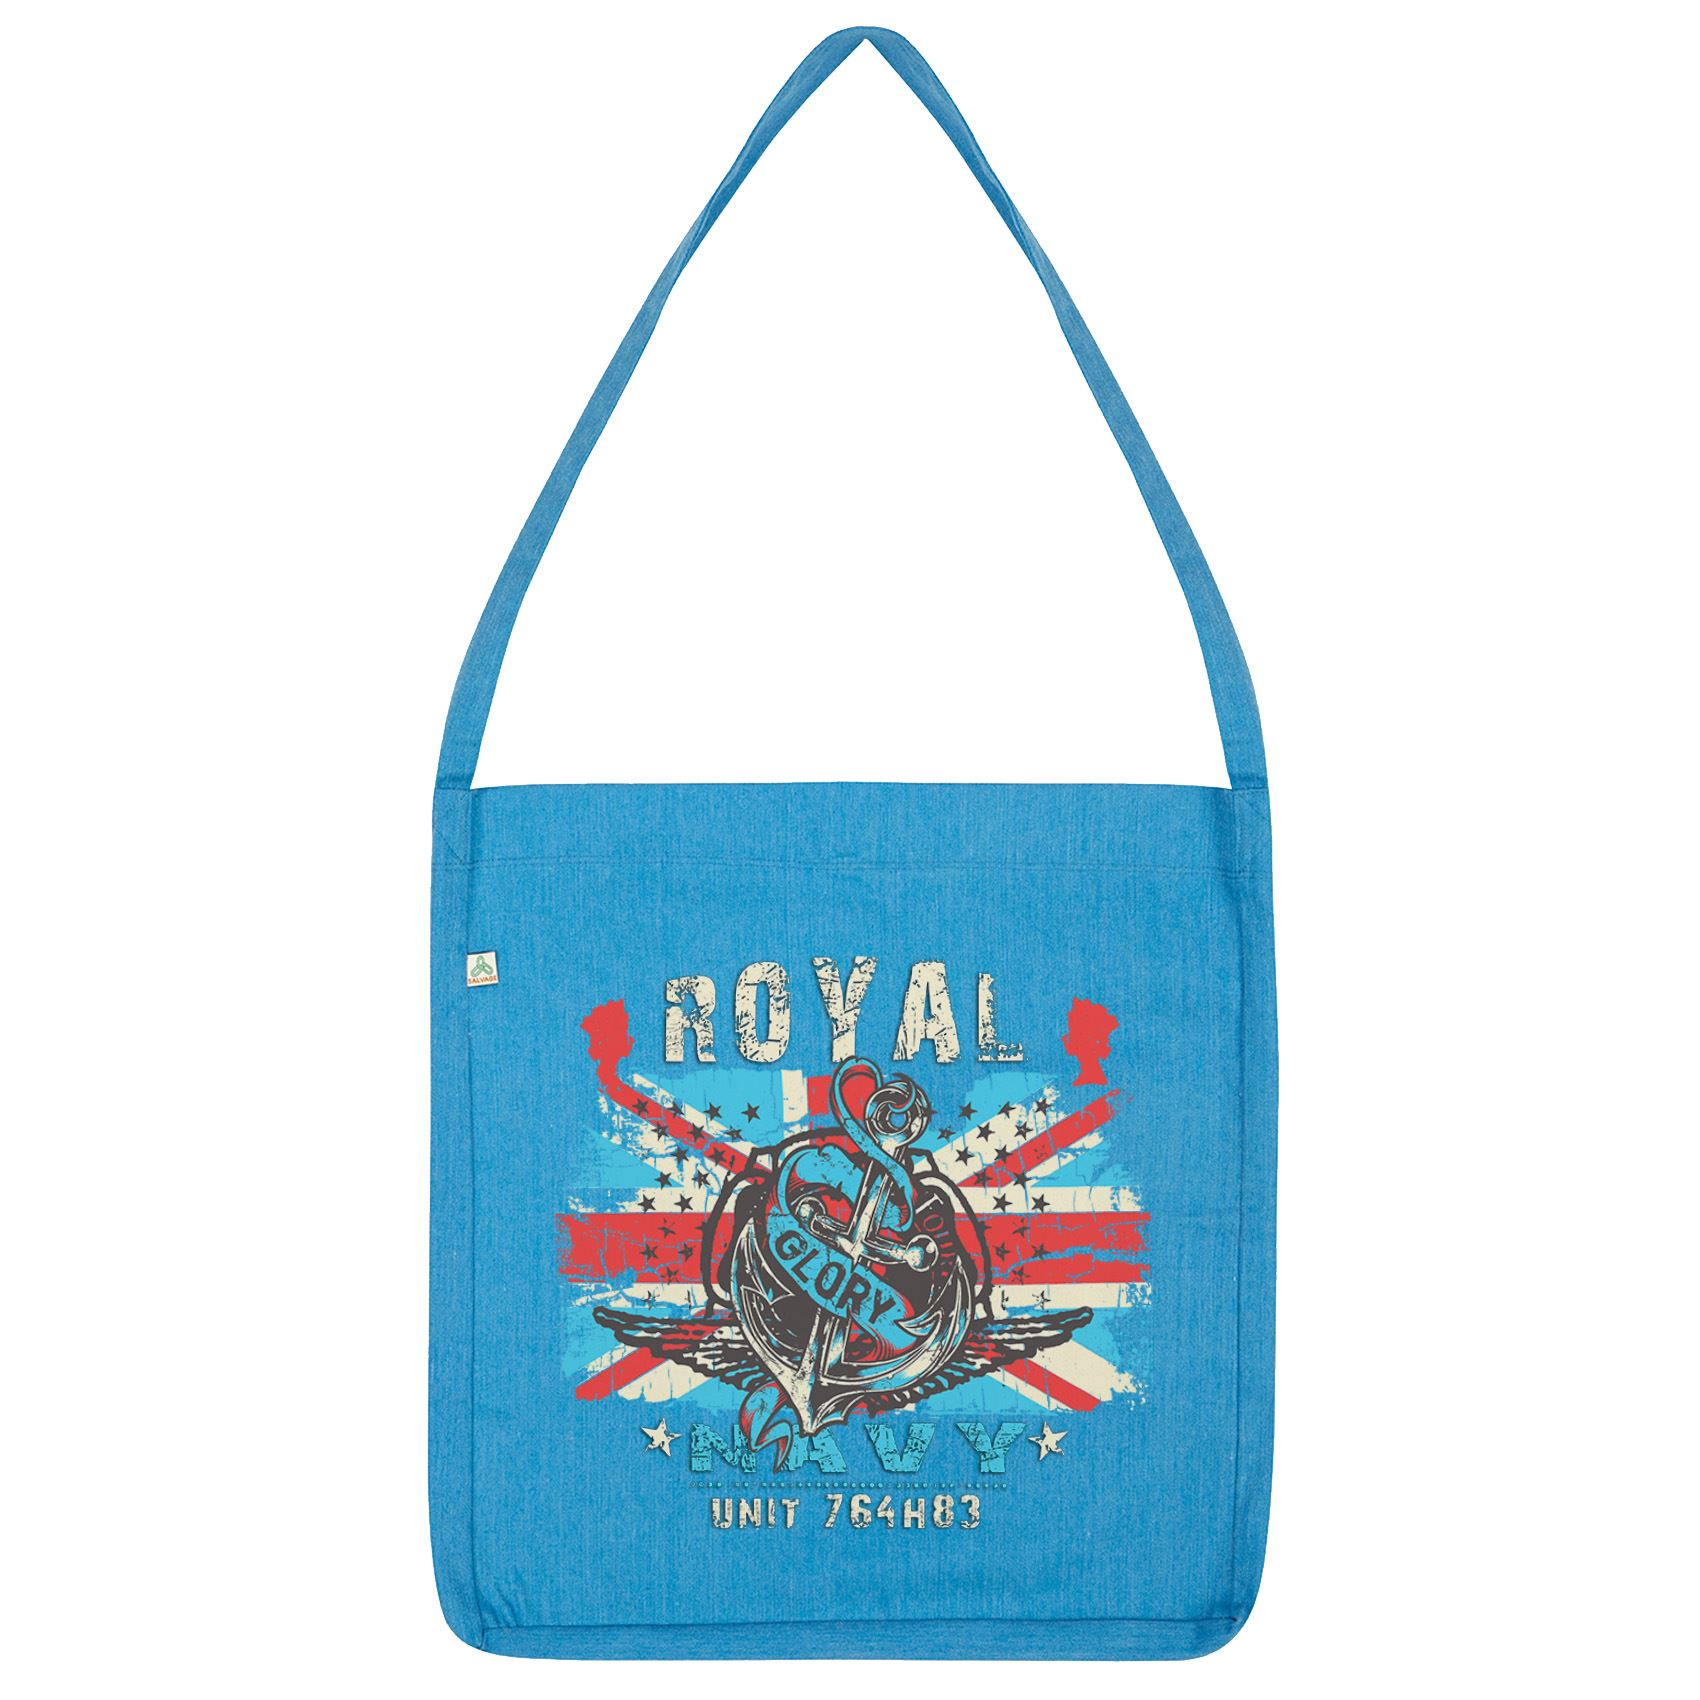 details about twisted envy union jack royal navy tote bag